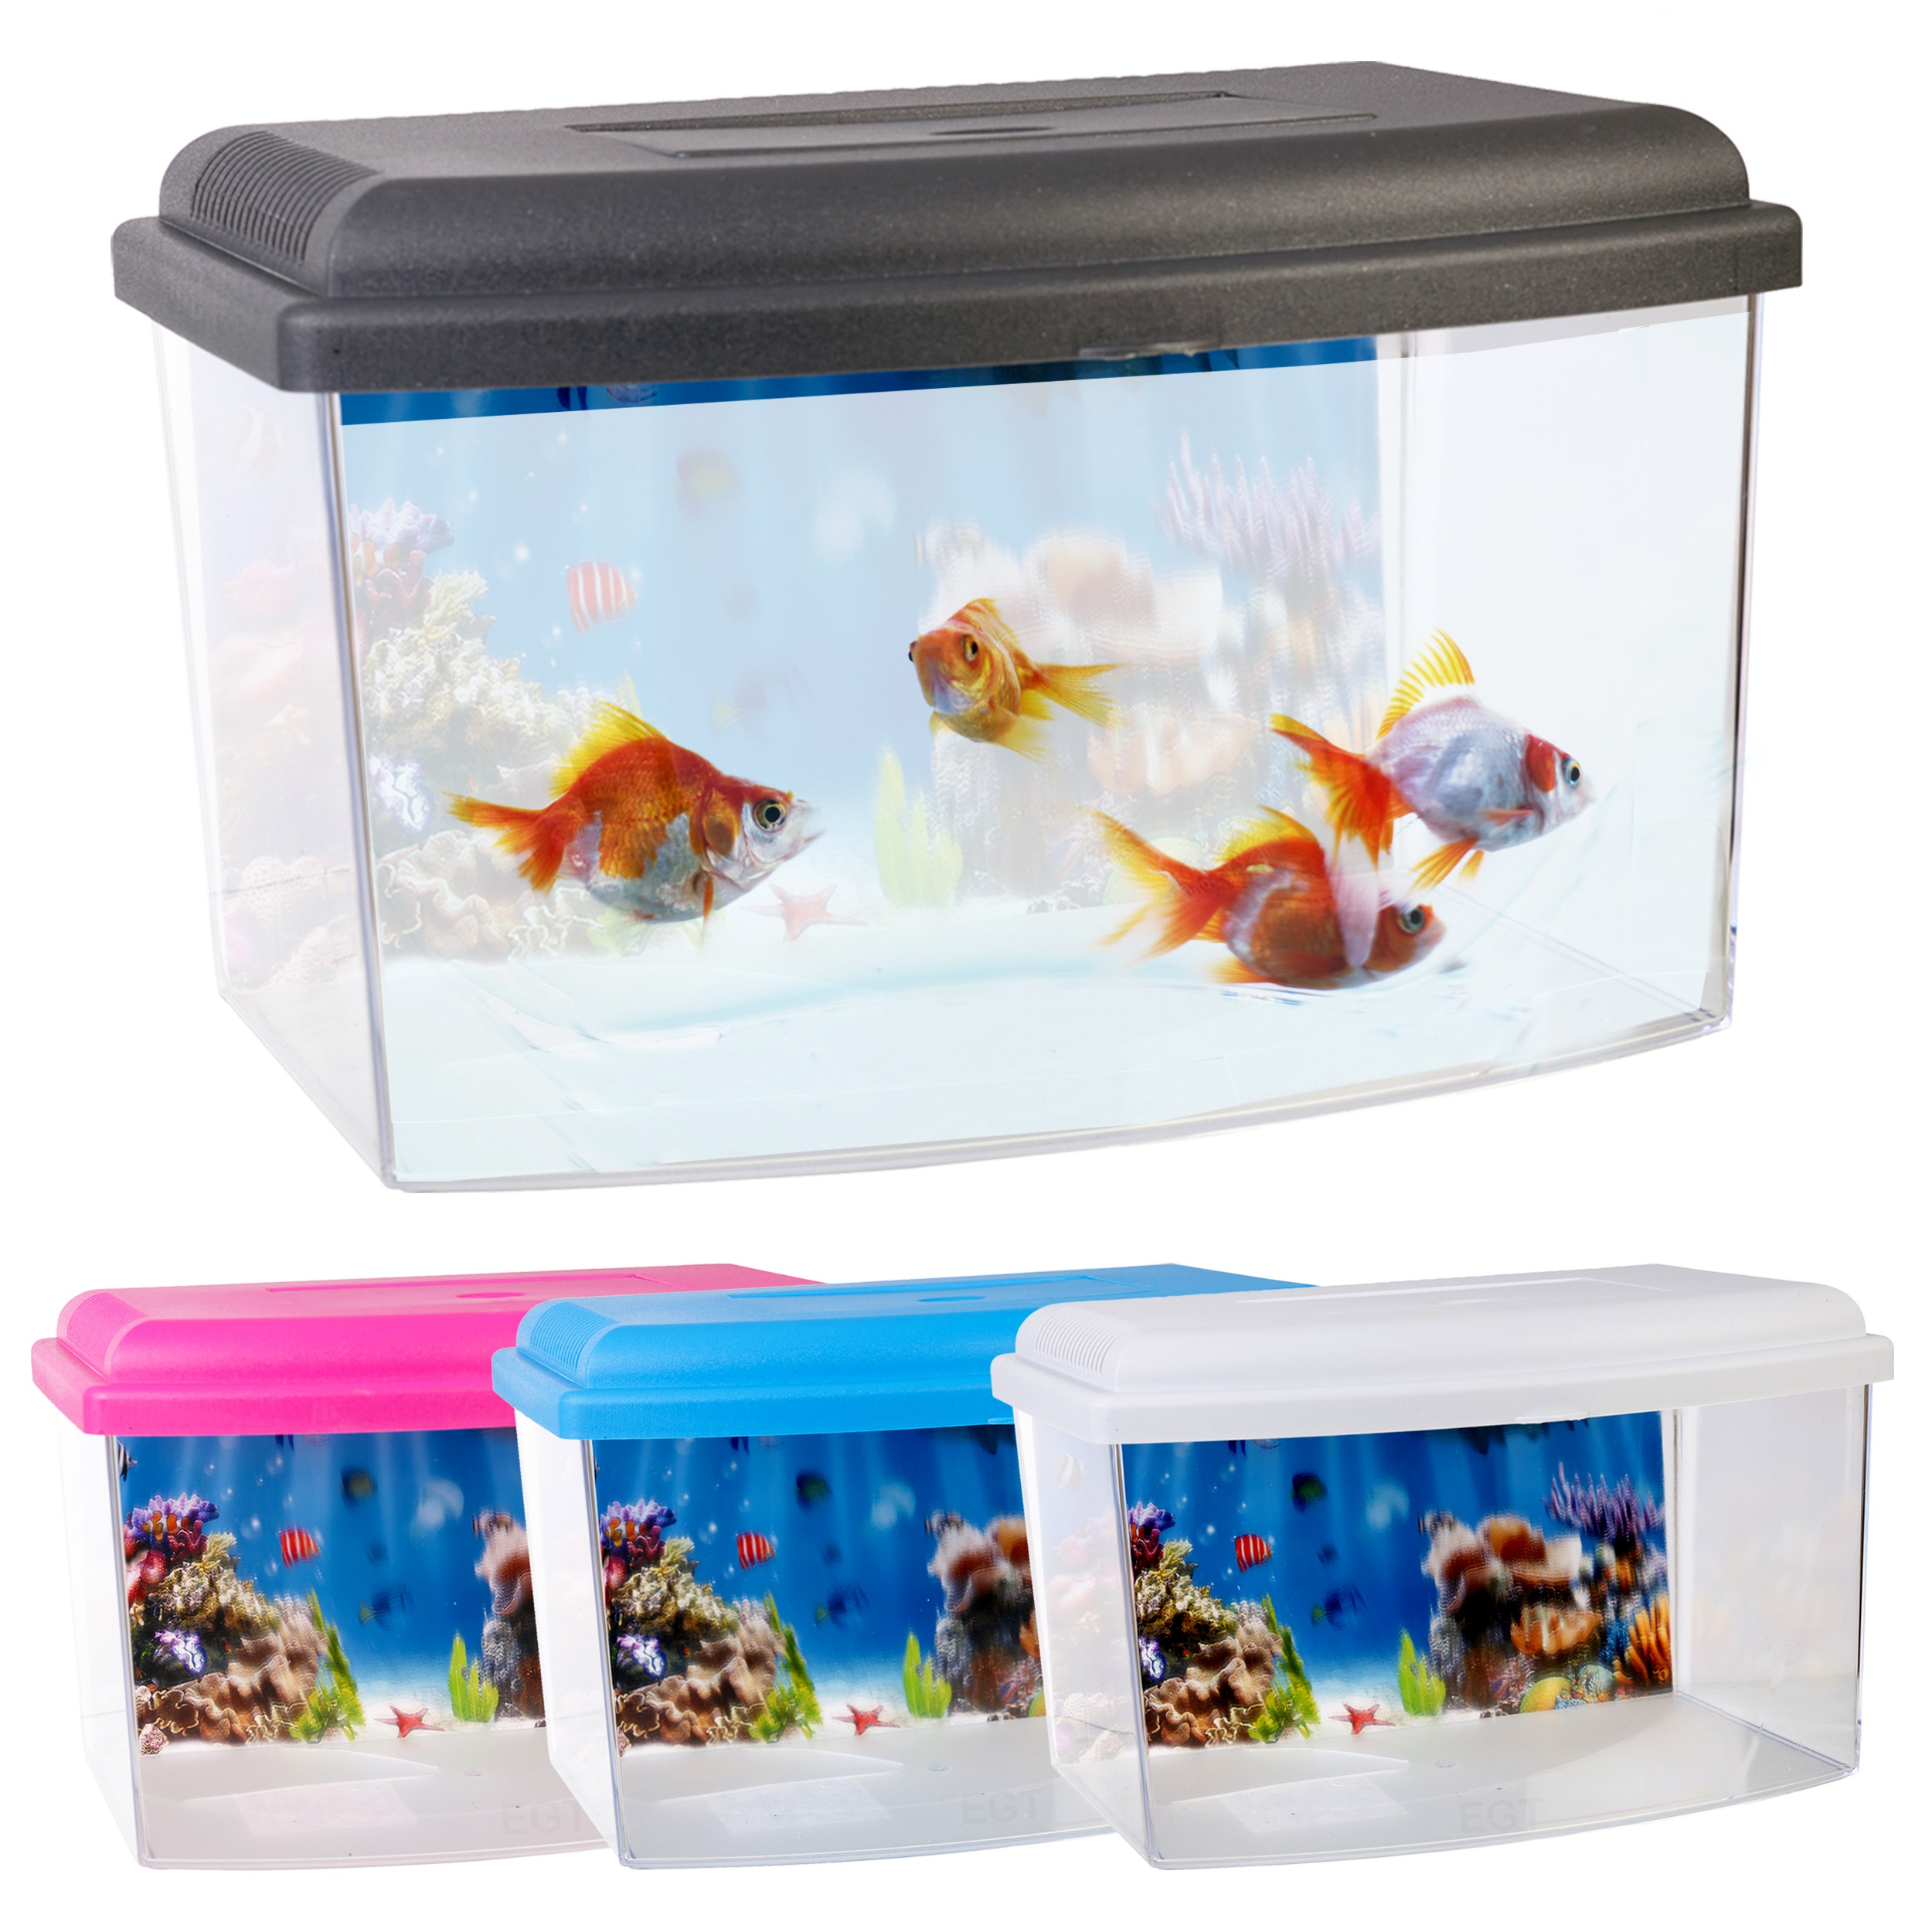 Aquarium fish tank price - Fish Tank Quantity Item Specifics